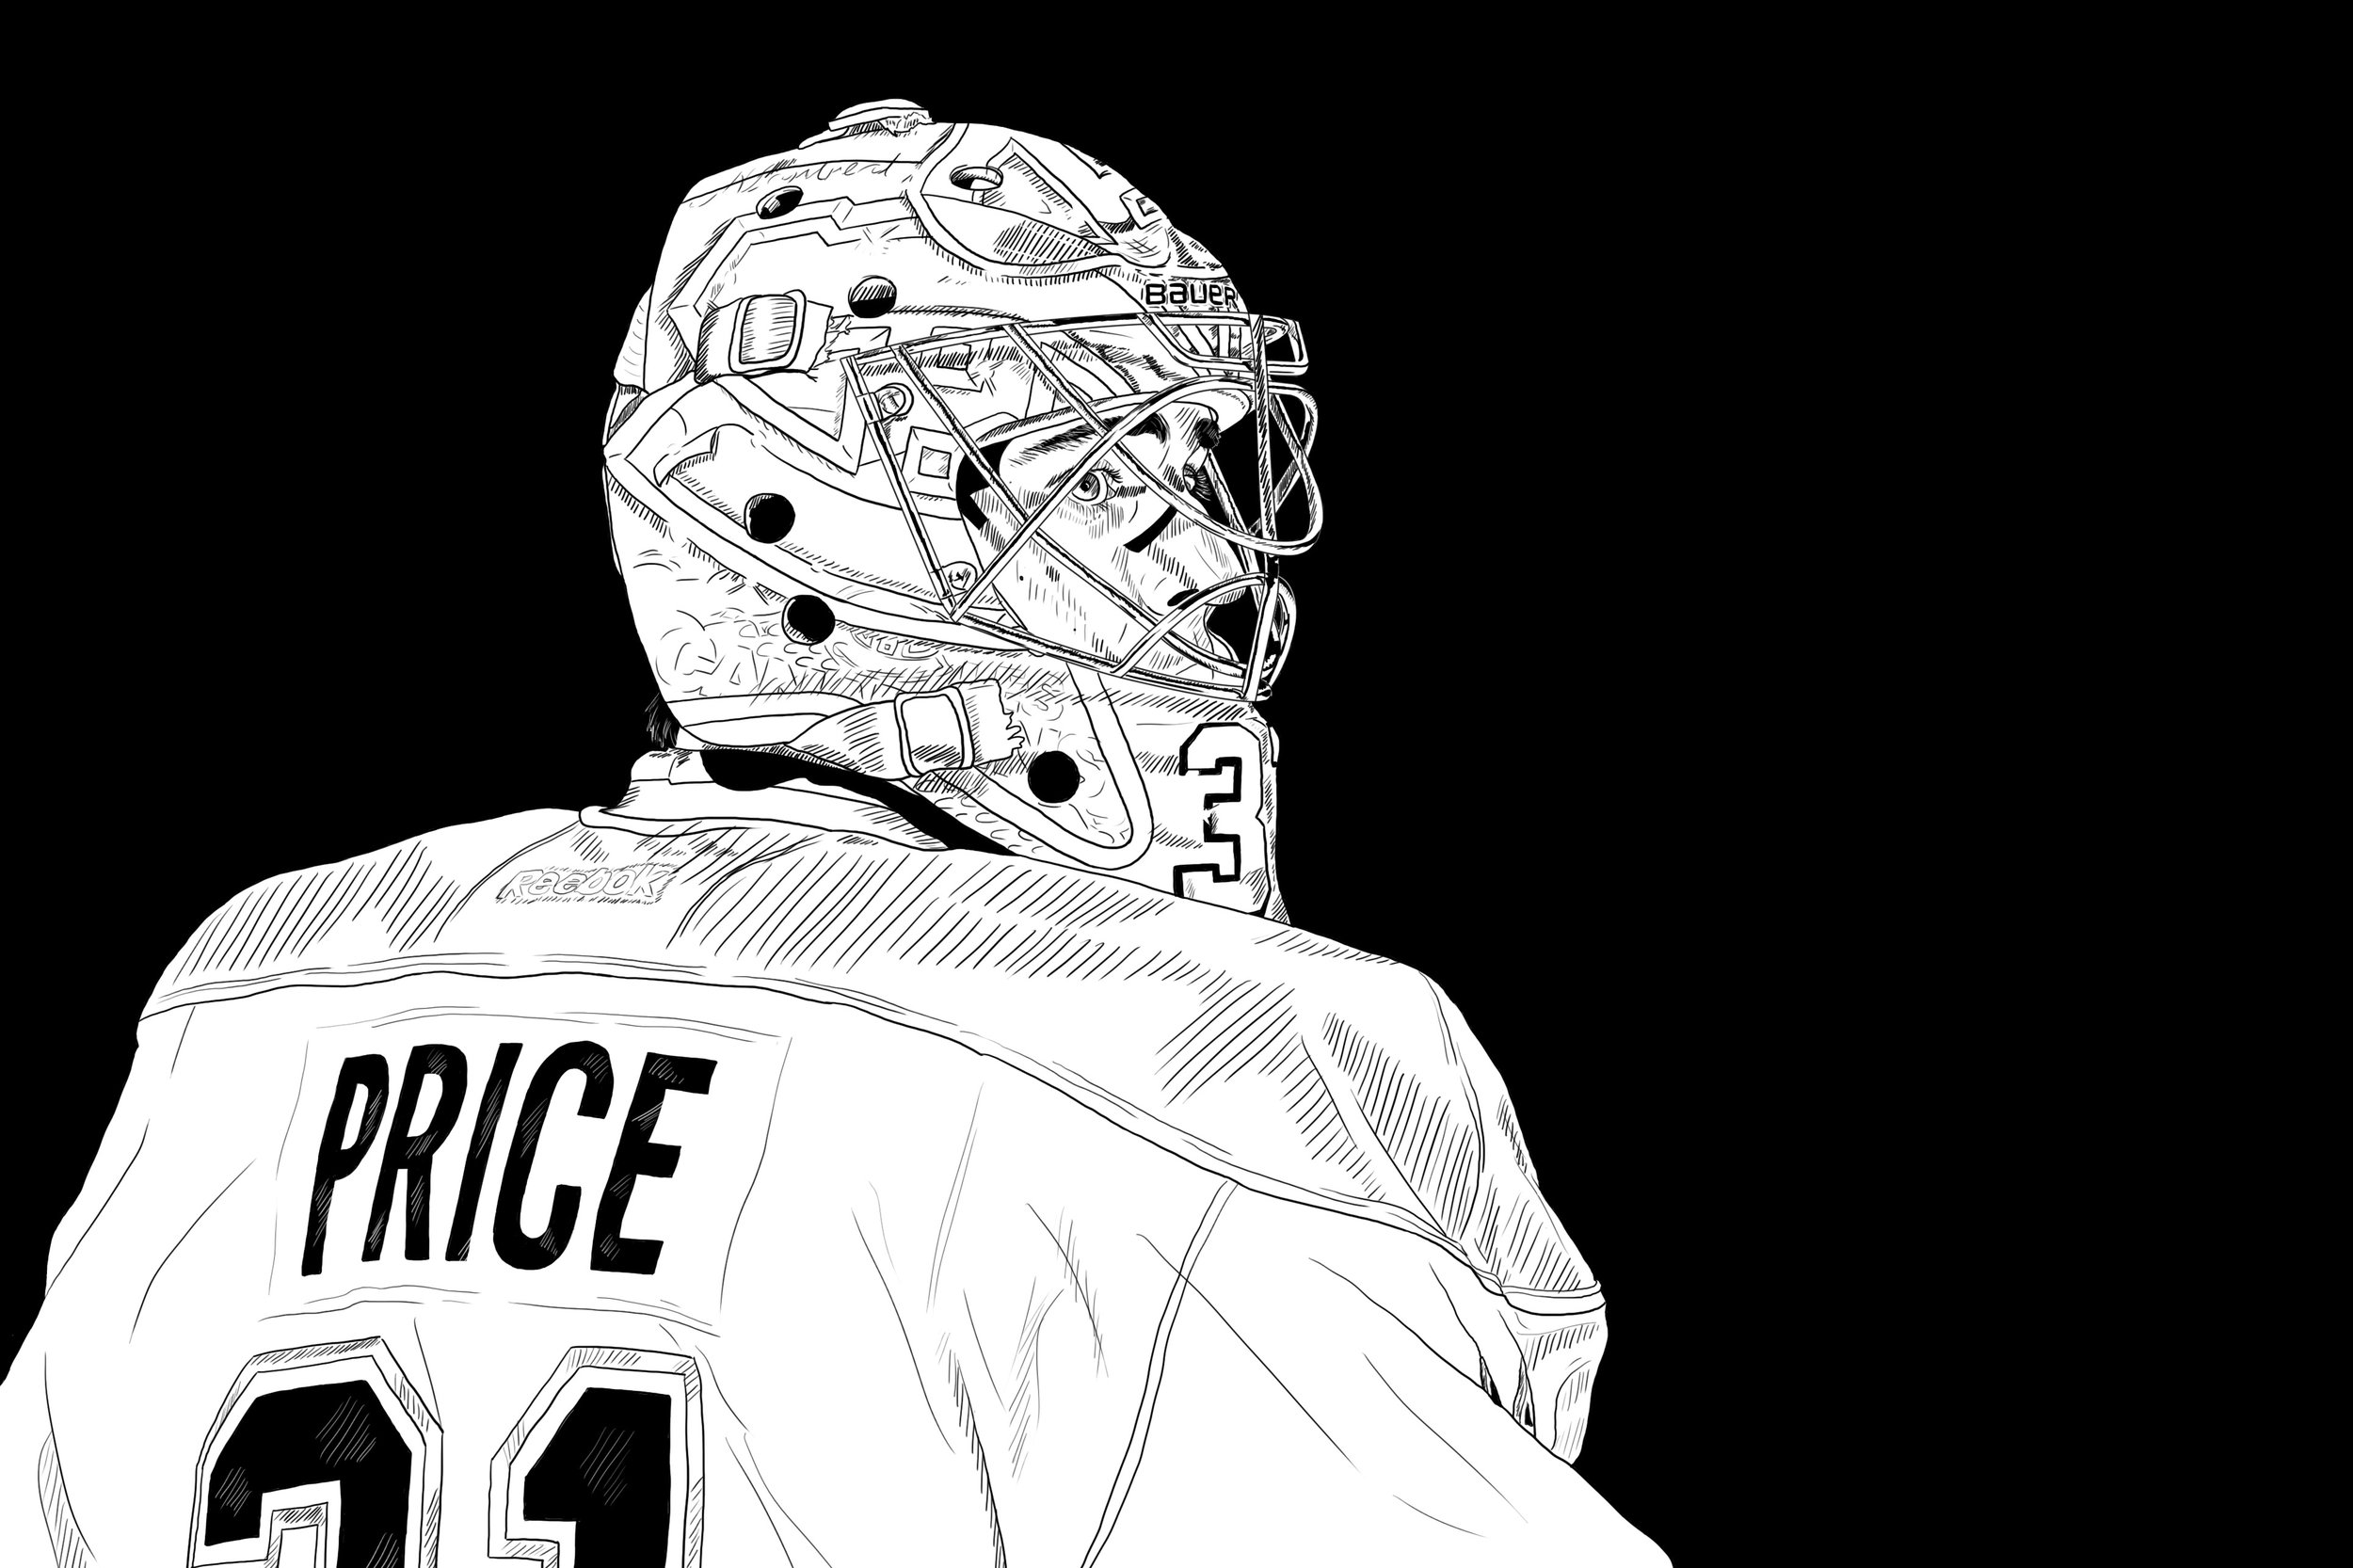 Carey Price No.31